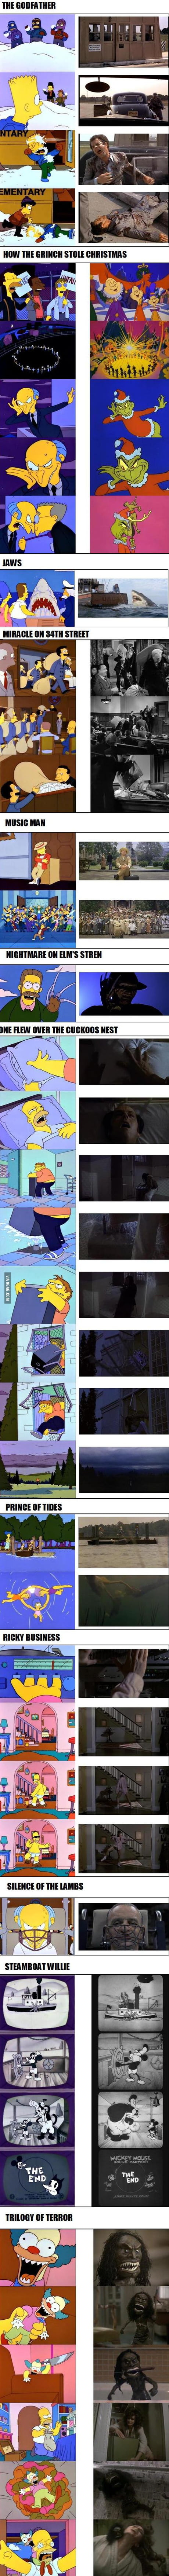 The Simpsons Movie Parodies Are F King Cool Pt 2 9gag